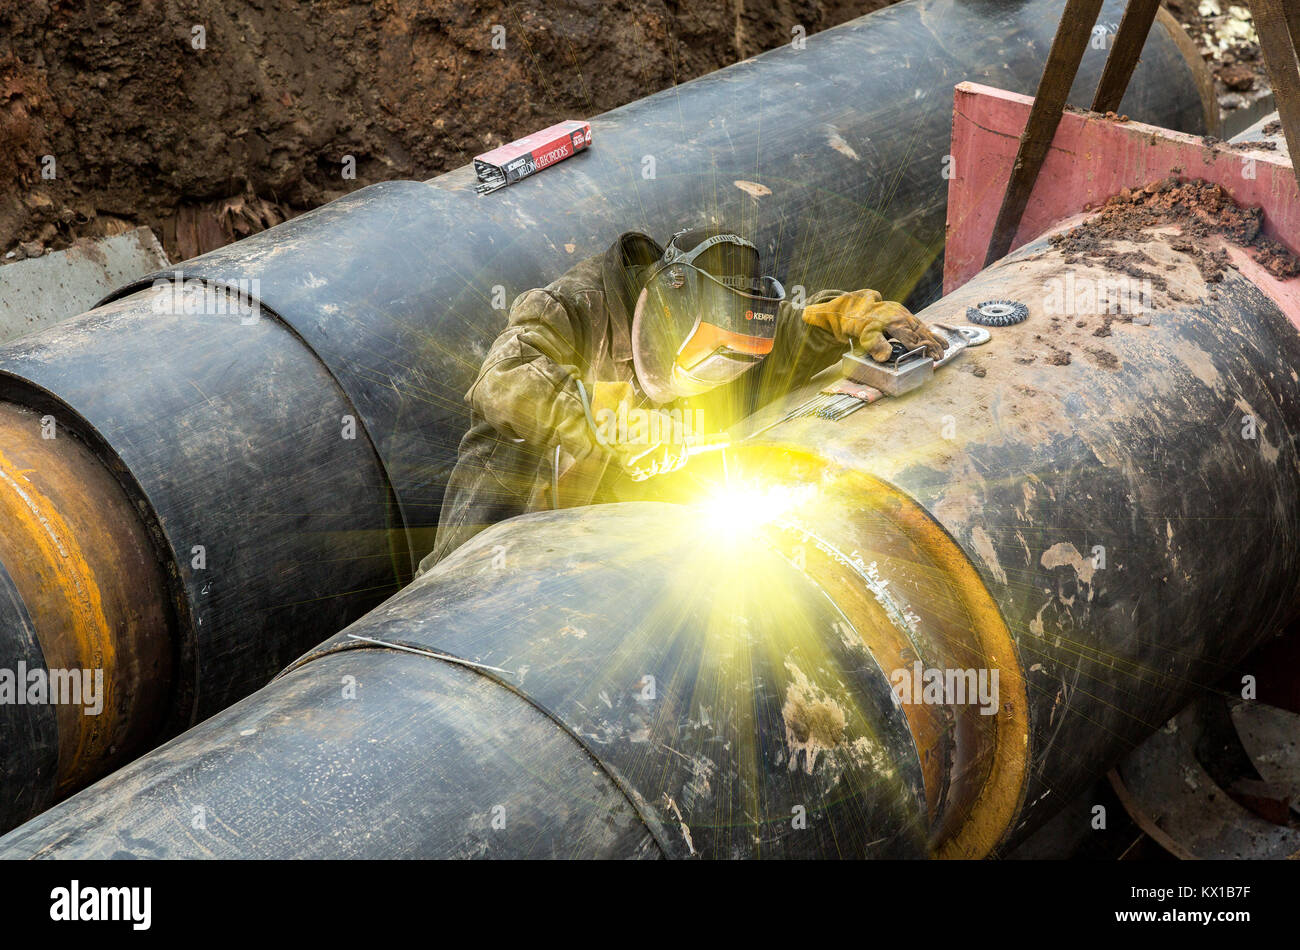 Samara, Russia - October 1, 2017: Worker with protective mask welding metal with sparks and smoke Stock Photo